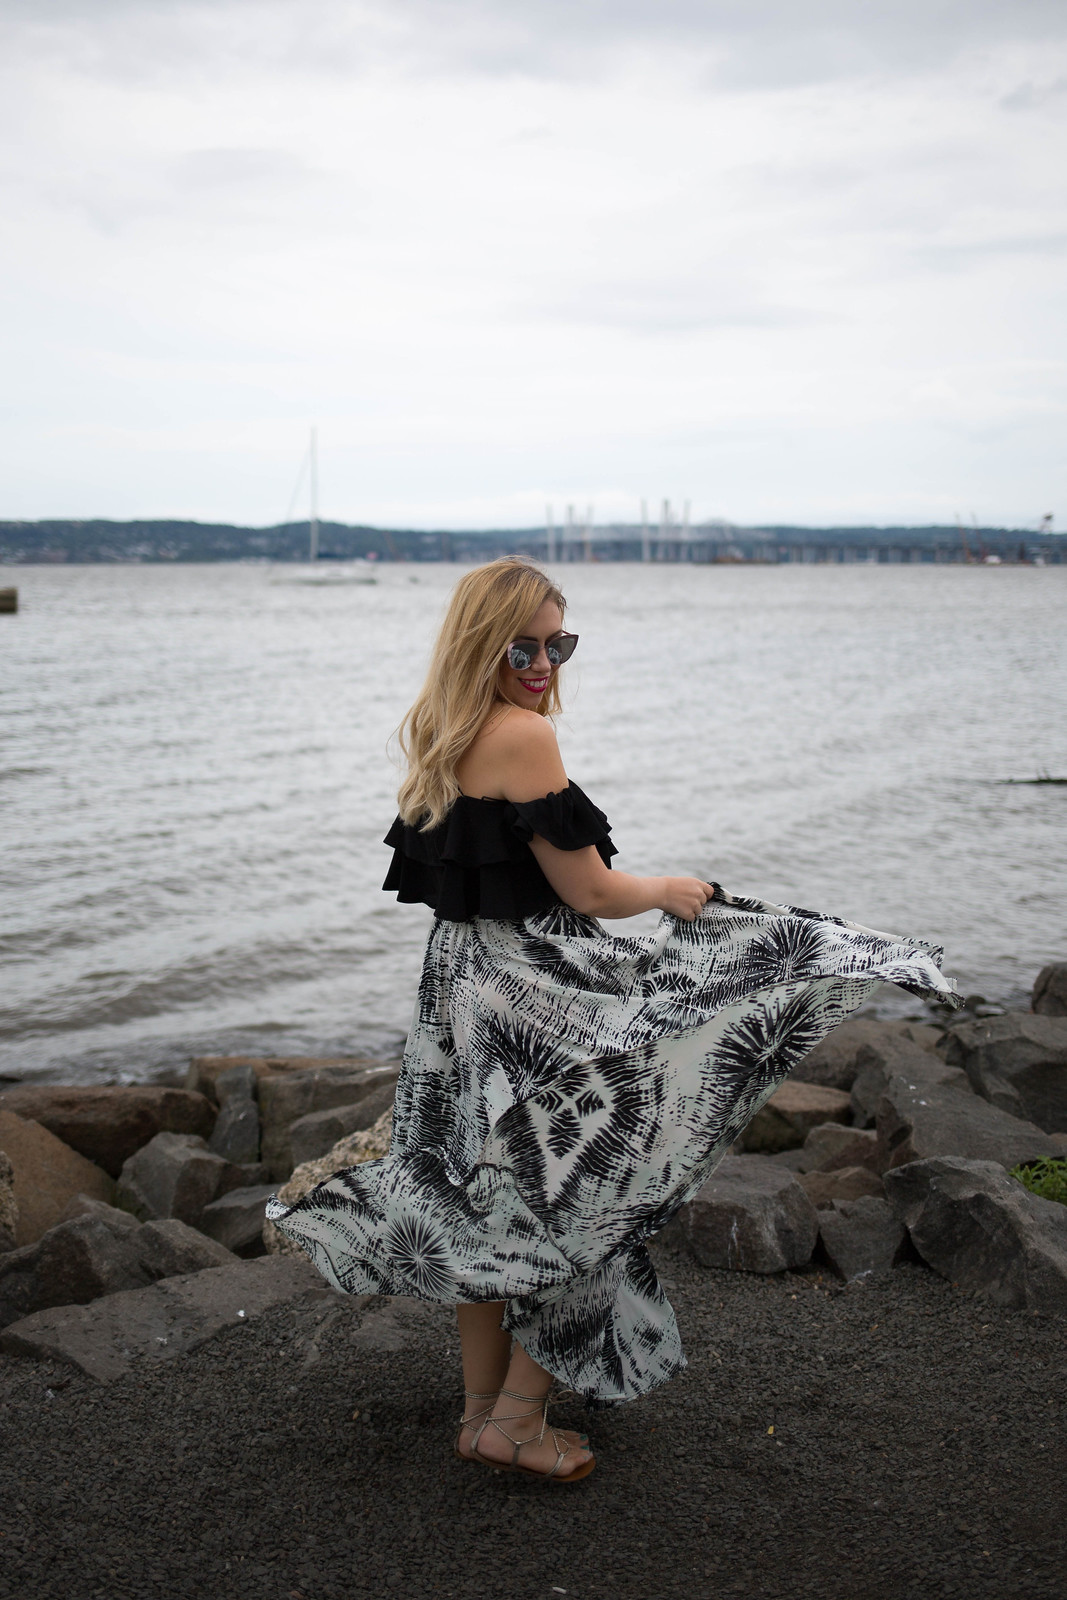 Twirl Tie Dye Maxi Skirt Black Off Shoulder Crop Top New Tappan Zee Bridge New York